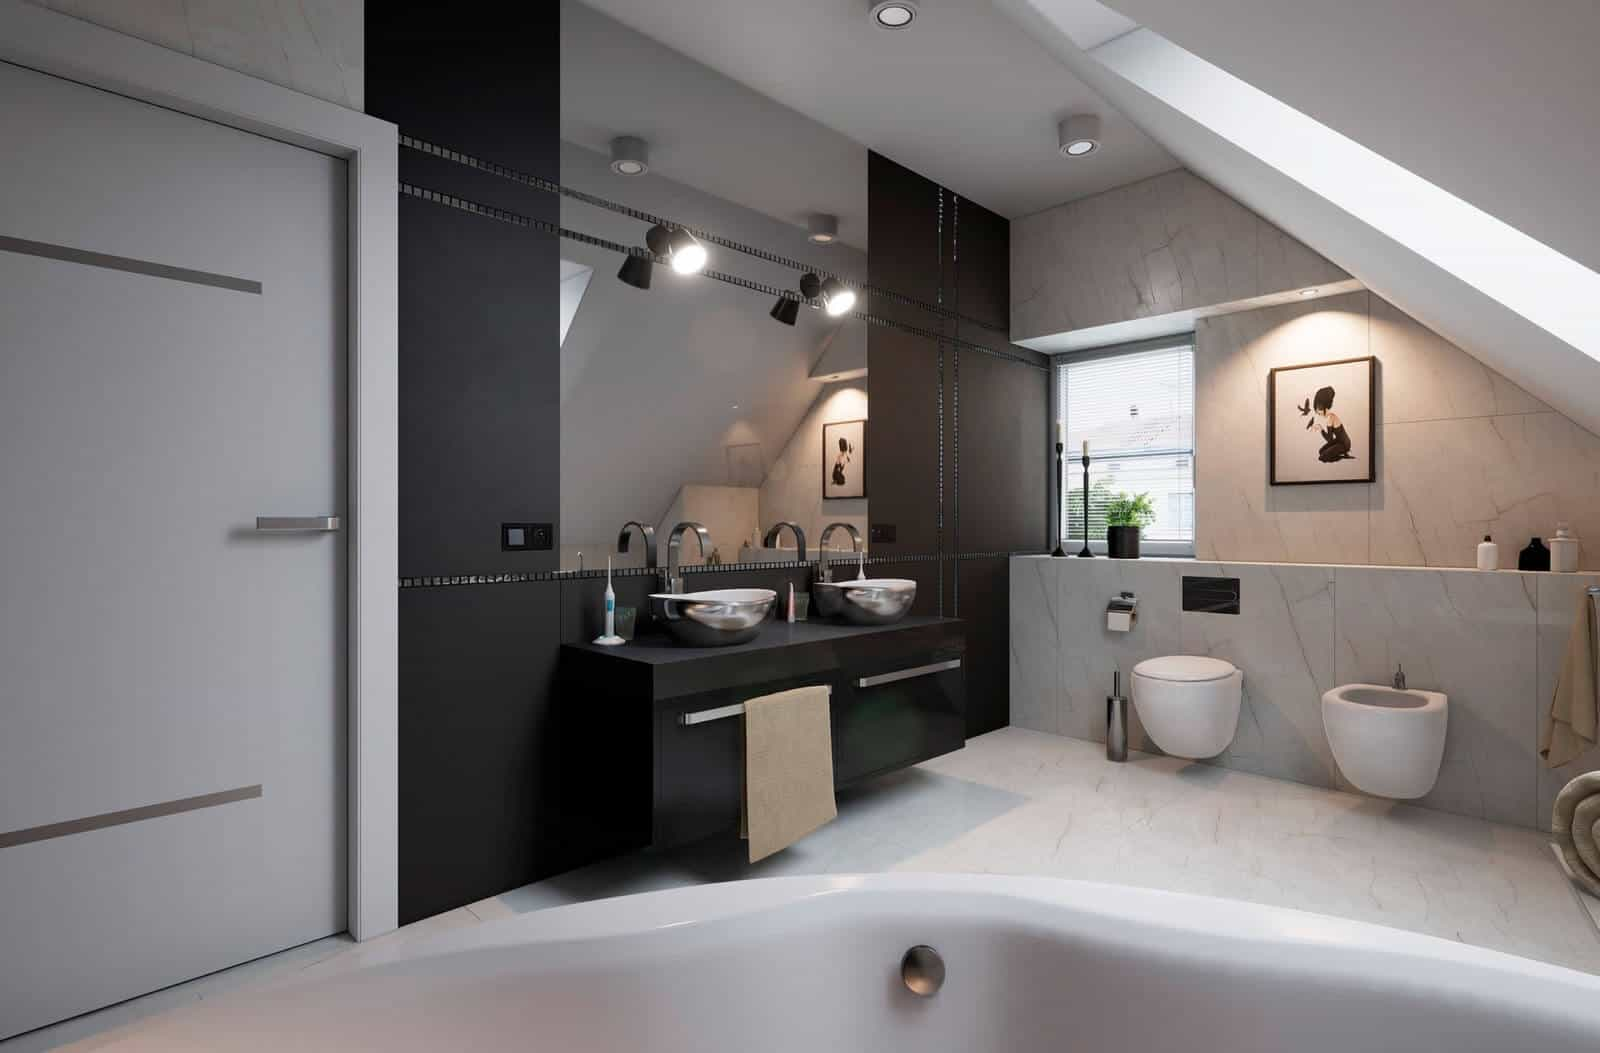 Bathroom lighting design guide